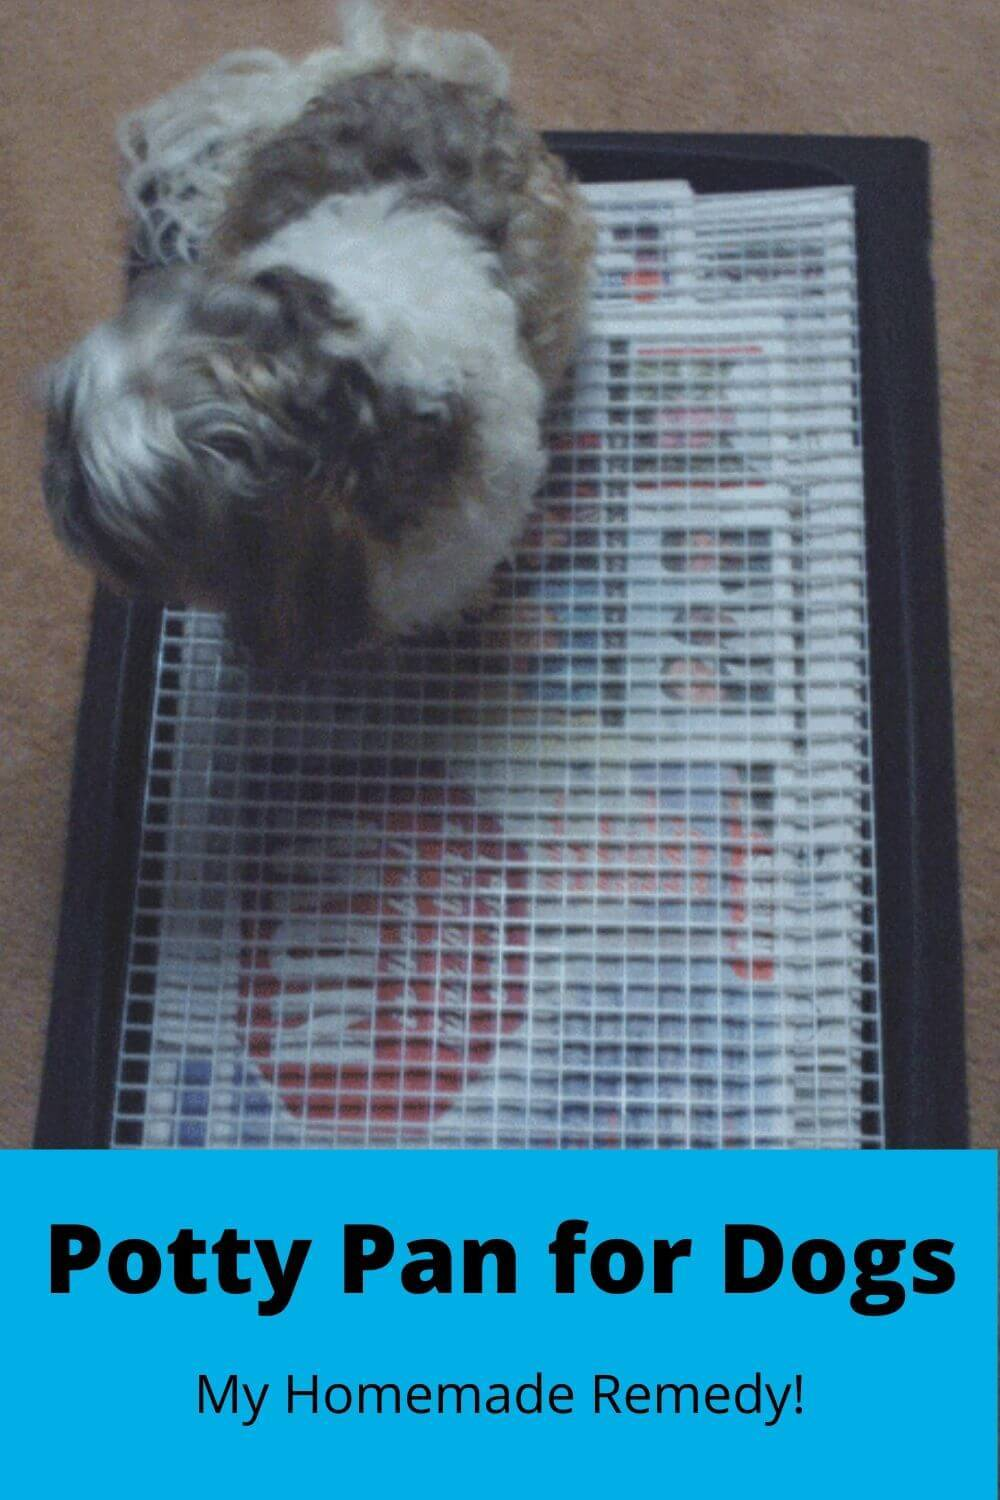 Potty pan for dogs - my homemade remedy!